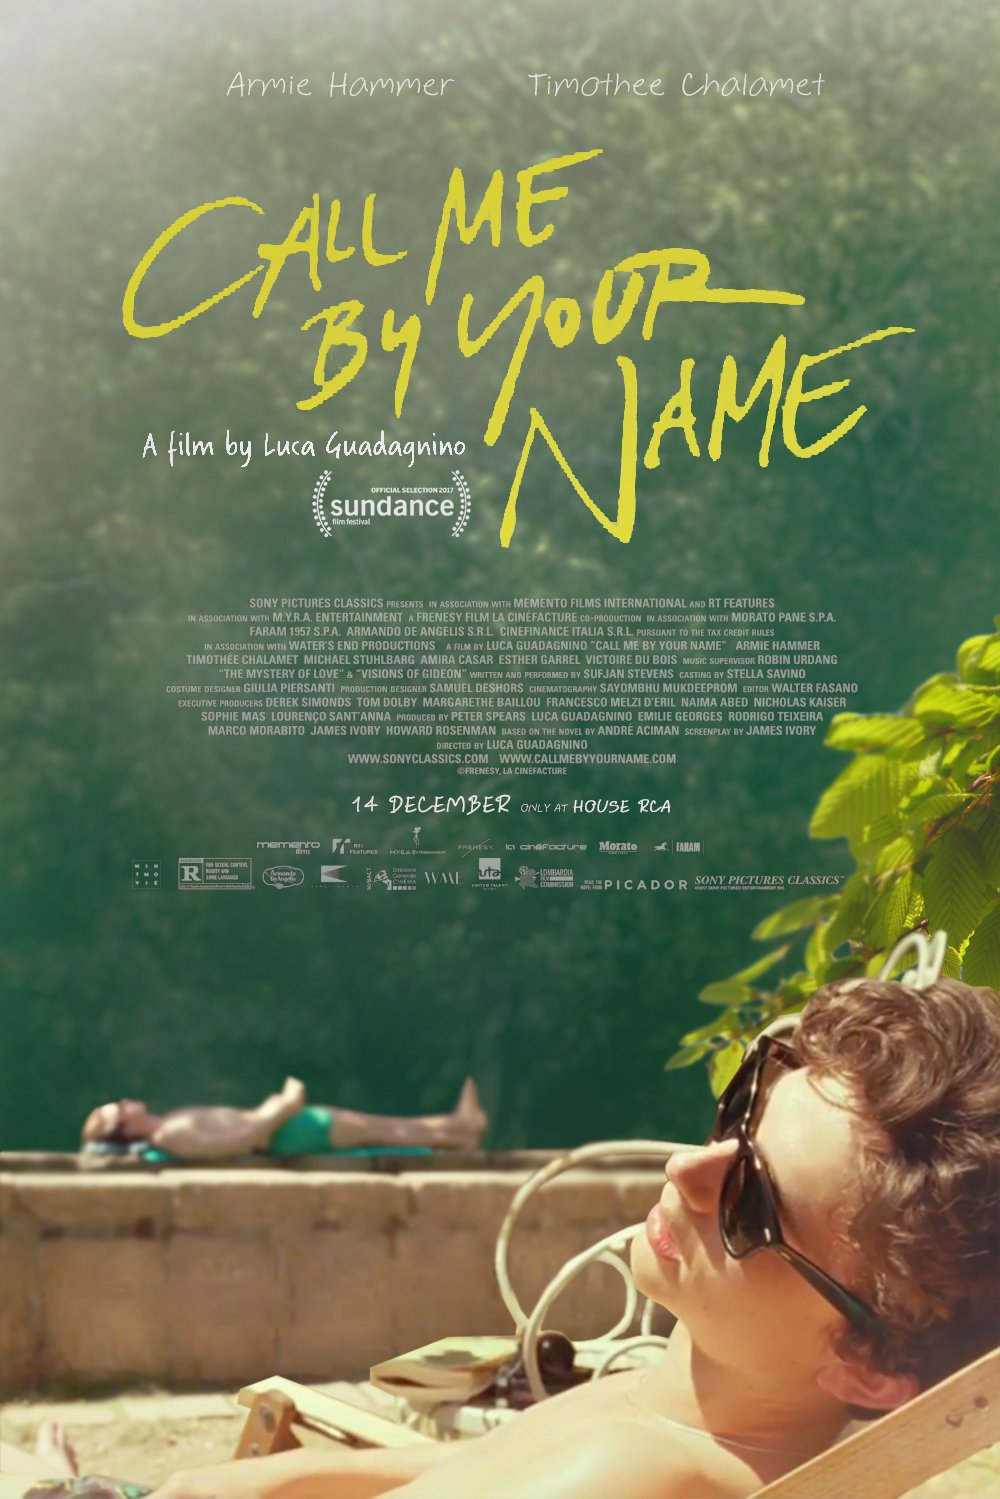 Direct by Luca Guadagnino - Written by James Ivory - Based on the novel by André Aciman